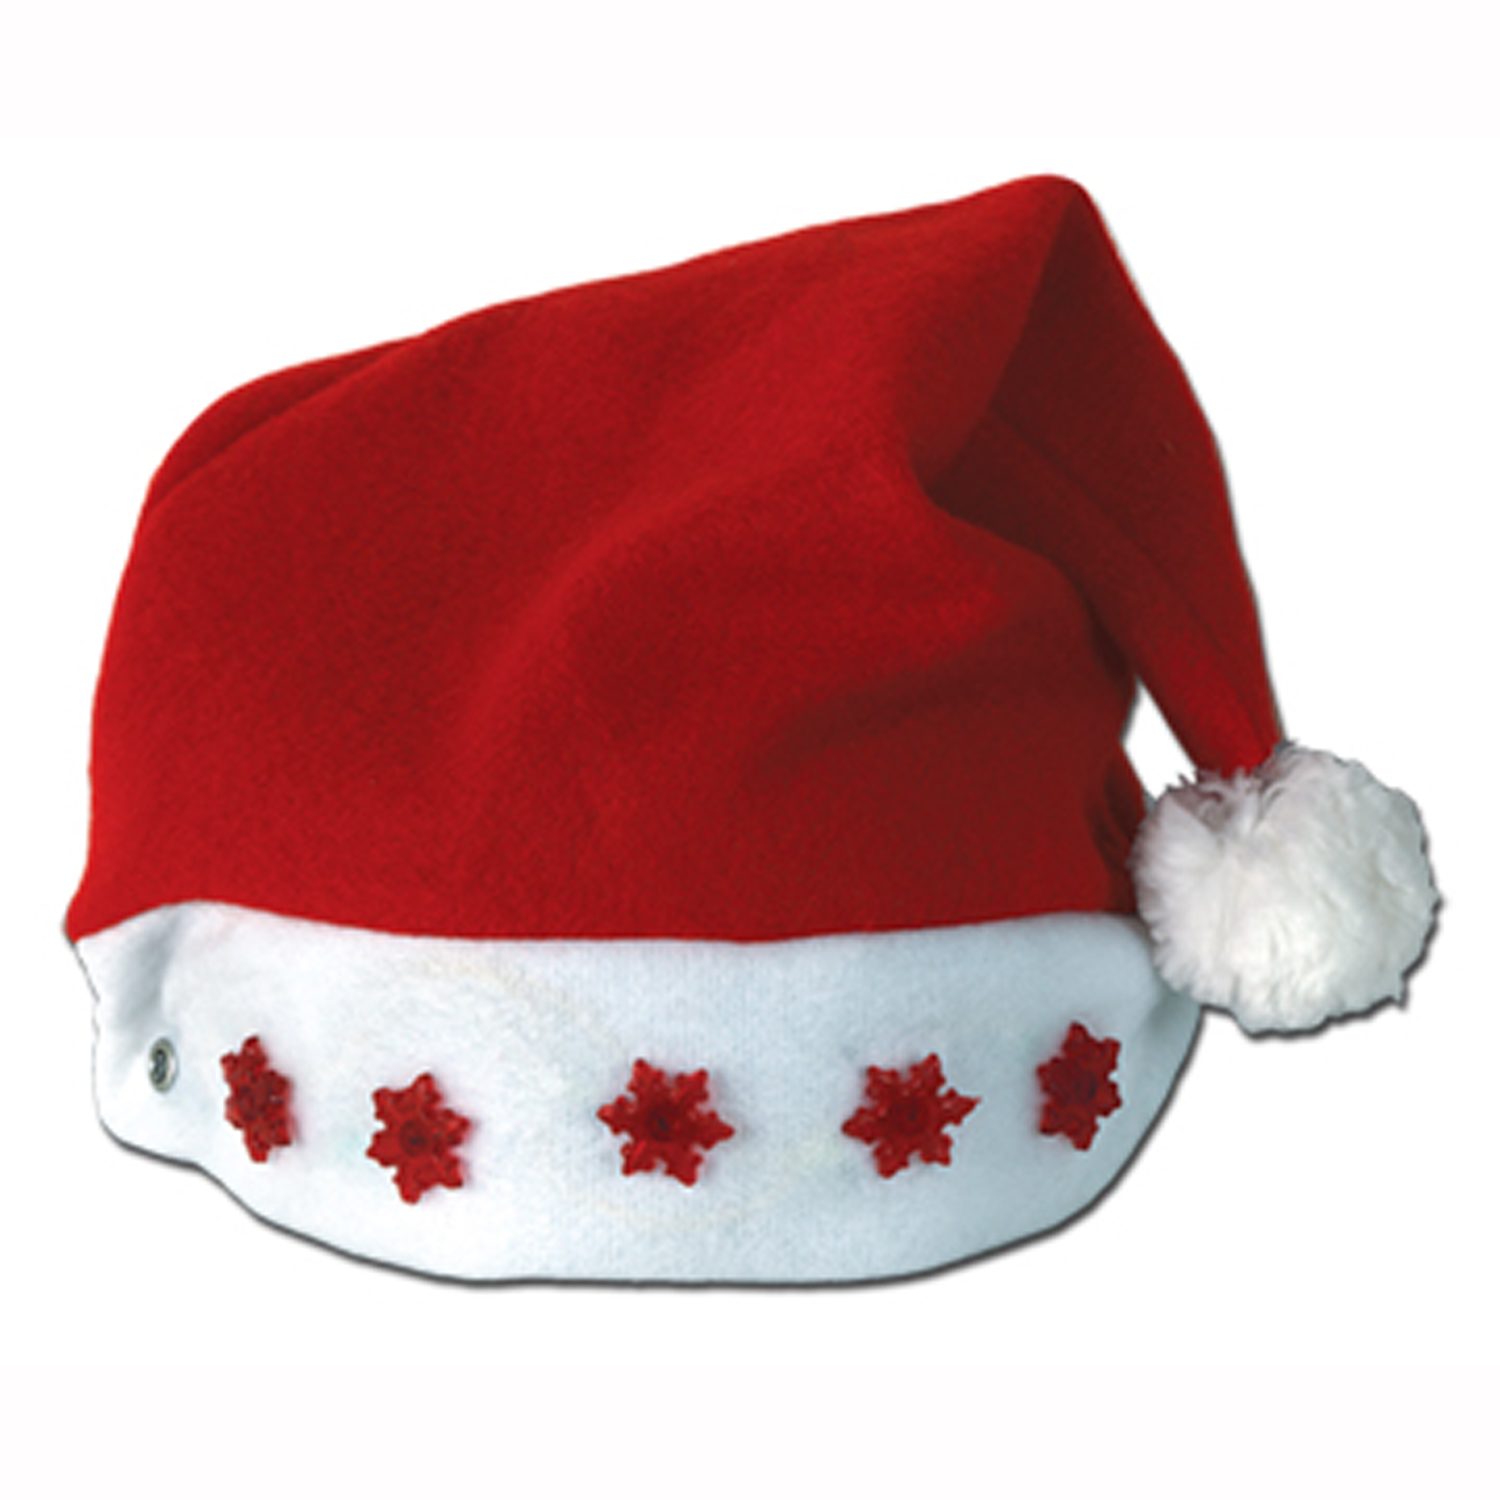 f675a3792e545 Details about Santa LIGHT-UP RED SNOW-FLAKE Santa Hat - Christmas Holiday  Blinking Party Cap